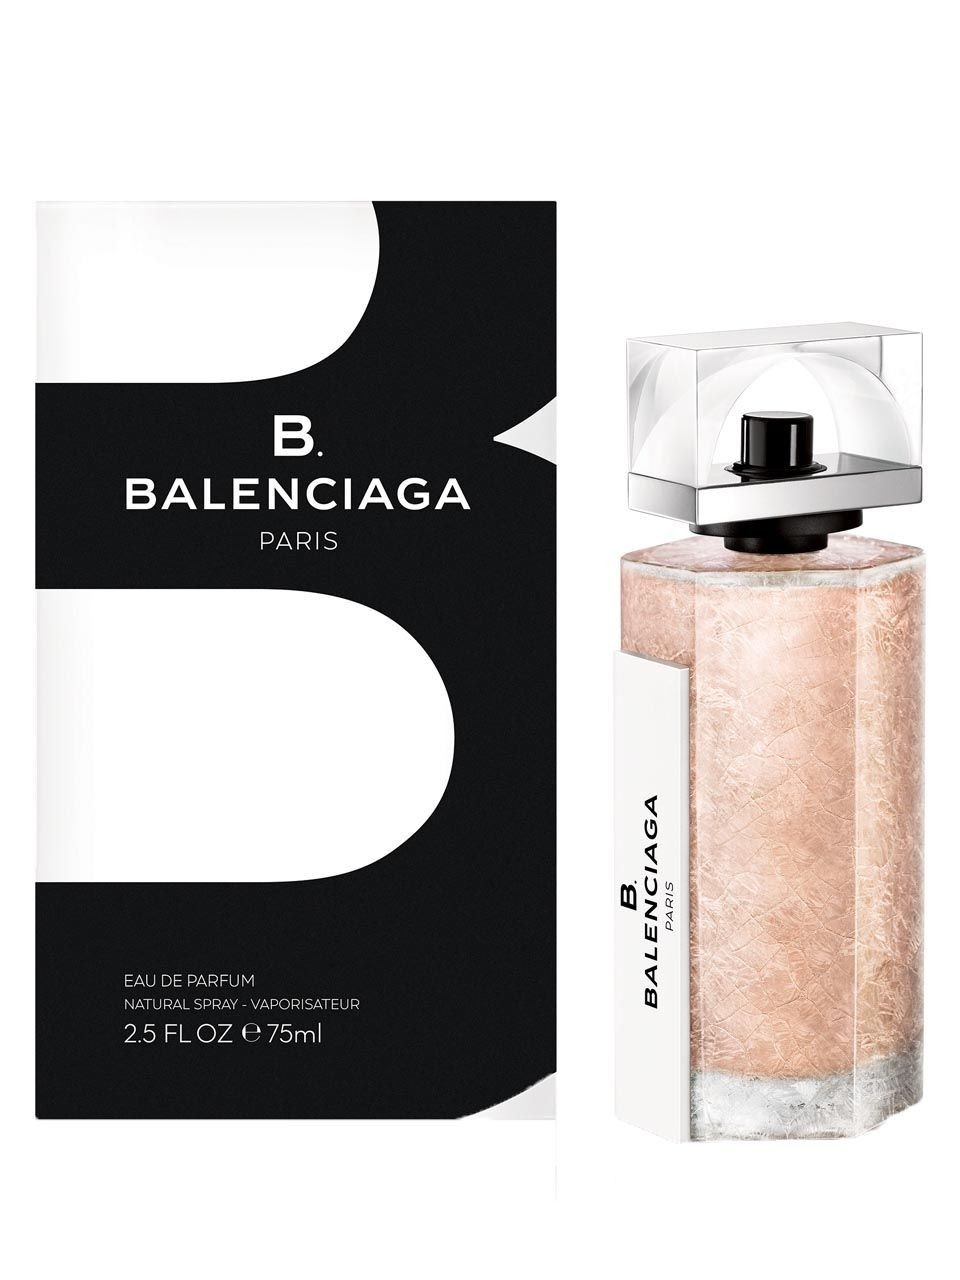 Thousands of perfume and cologne designer brands at jayslowlemangbud.ga Free shipping on orders over $ Calvin Klein, Dolce Gabbana, Escada, Lagerfeld, Gucci, and many more. Discount perfume and discount cologne up to 80% off retail.